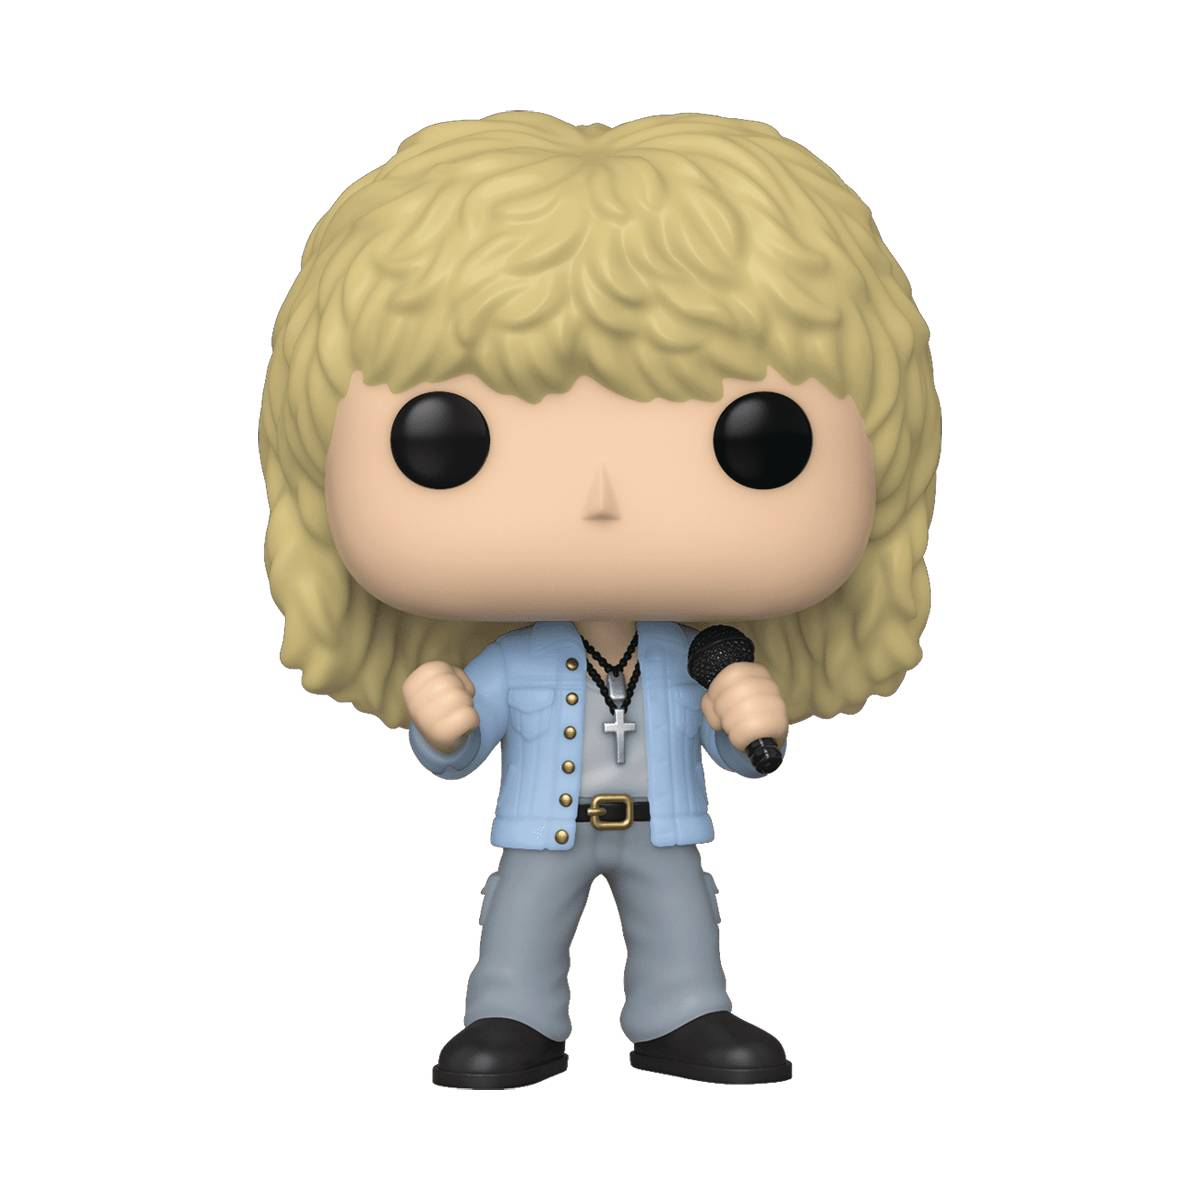 POP ROCKS DEF LEPPARD JOE ELLIOTT VIN FIG